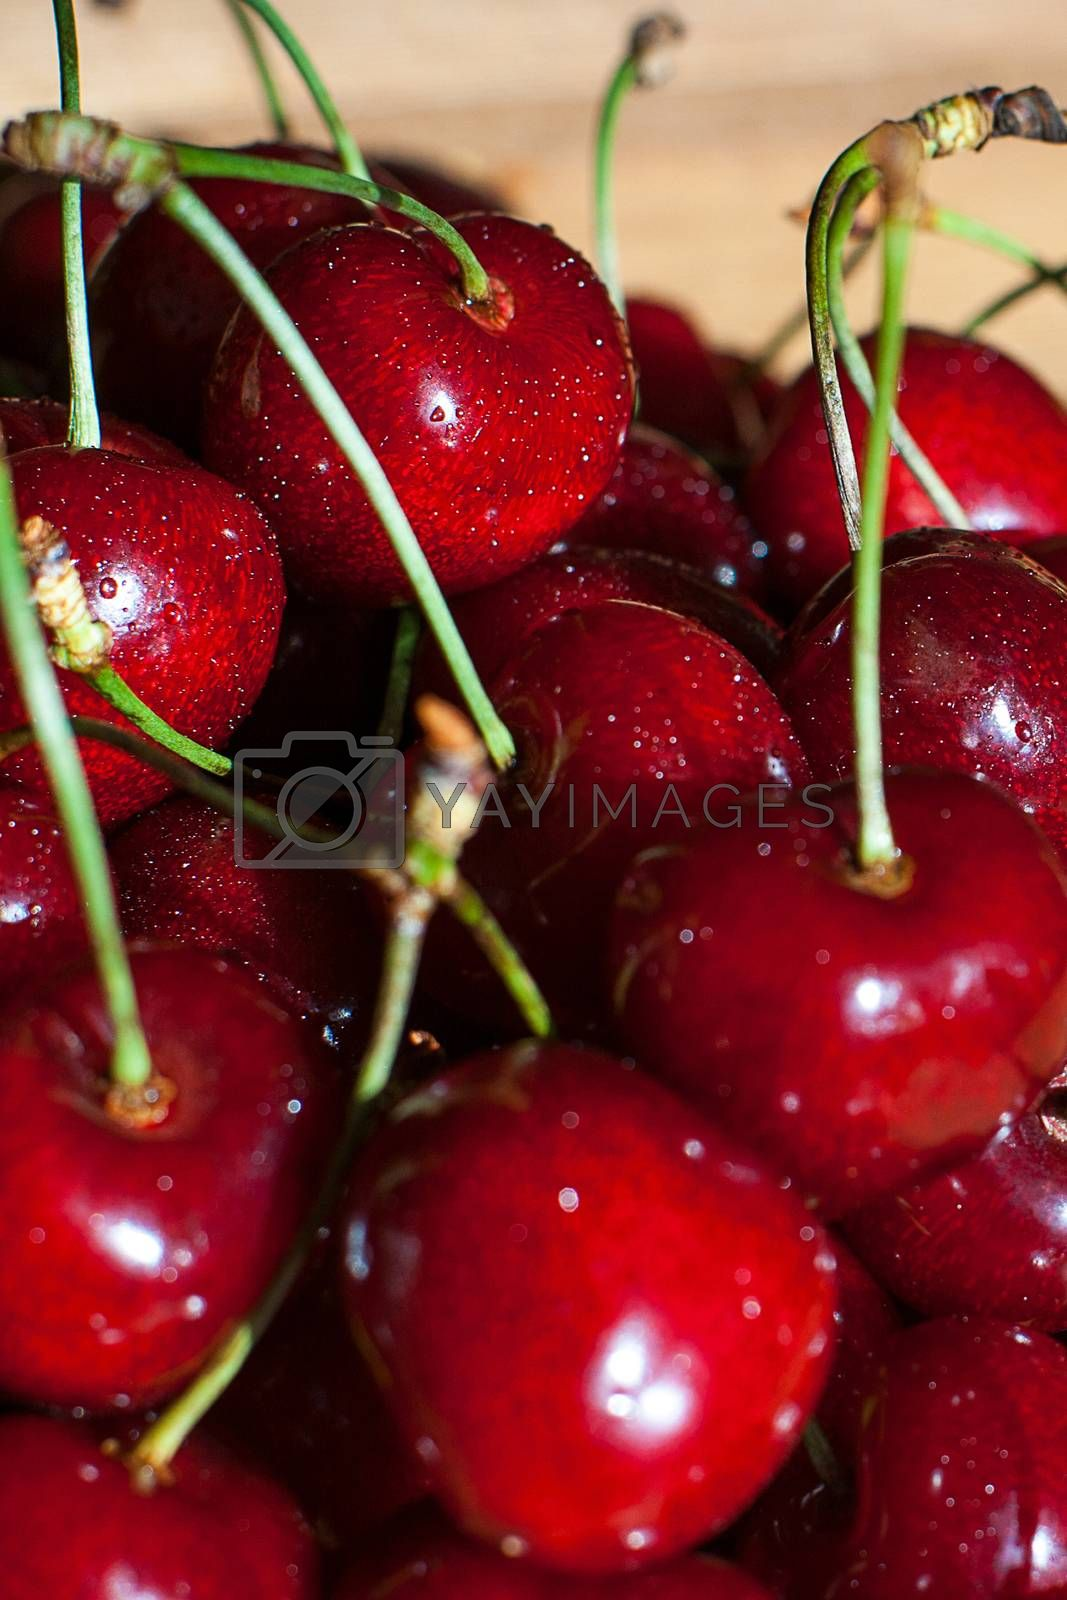 Royalty free image of Fresh juicy cherry on the table by AEK